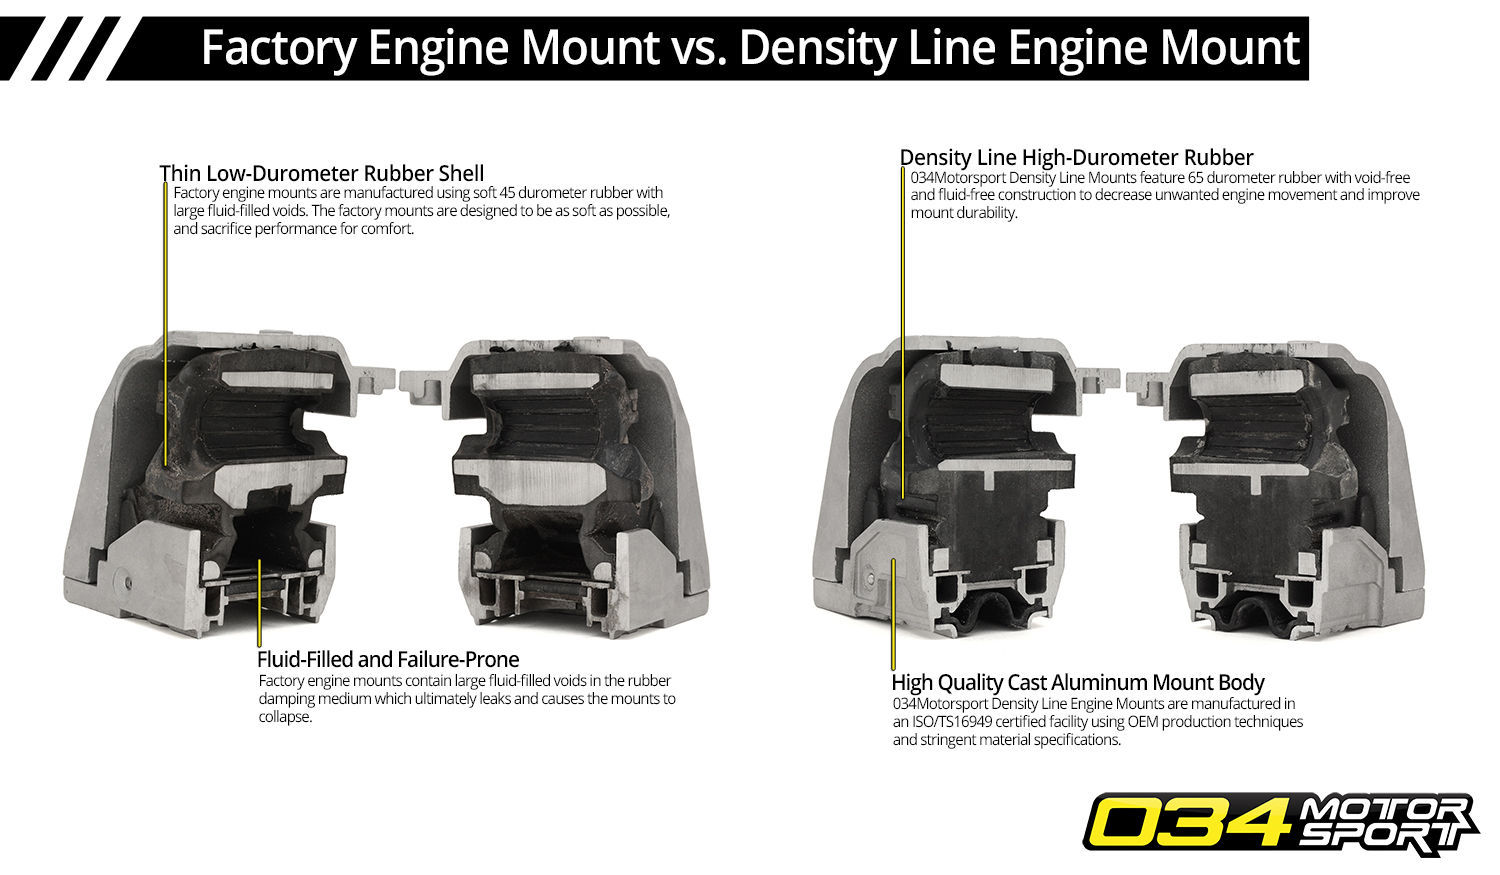 034Motorsport Density Line Mounts for Transverse Audi/Volkswagen A3/TT & Golf/Jetta/GTI/GLI vs. Factory Mounts